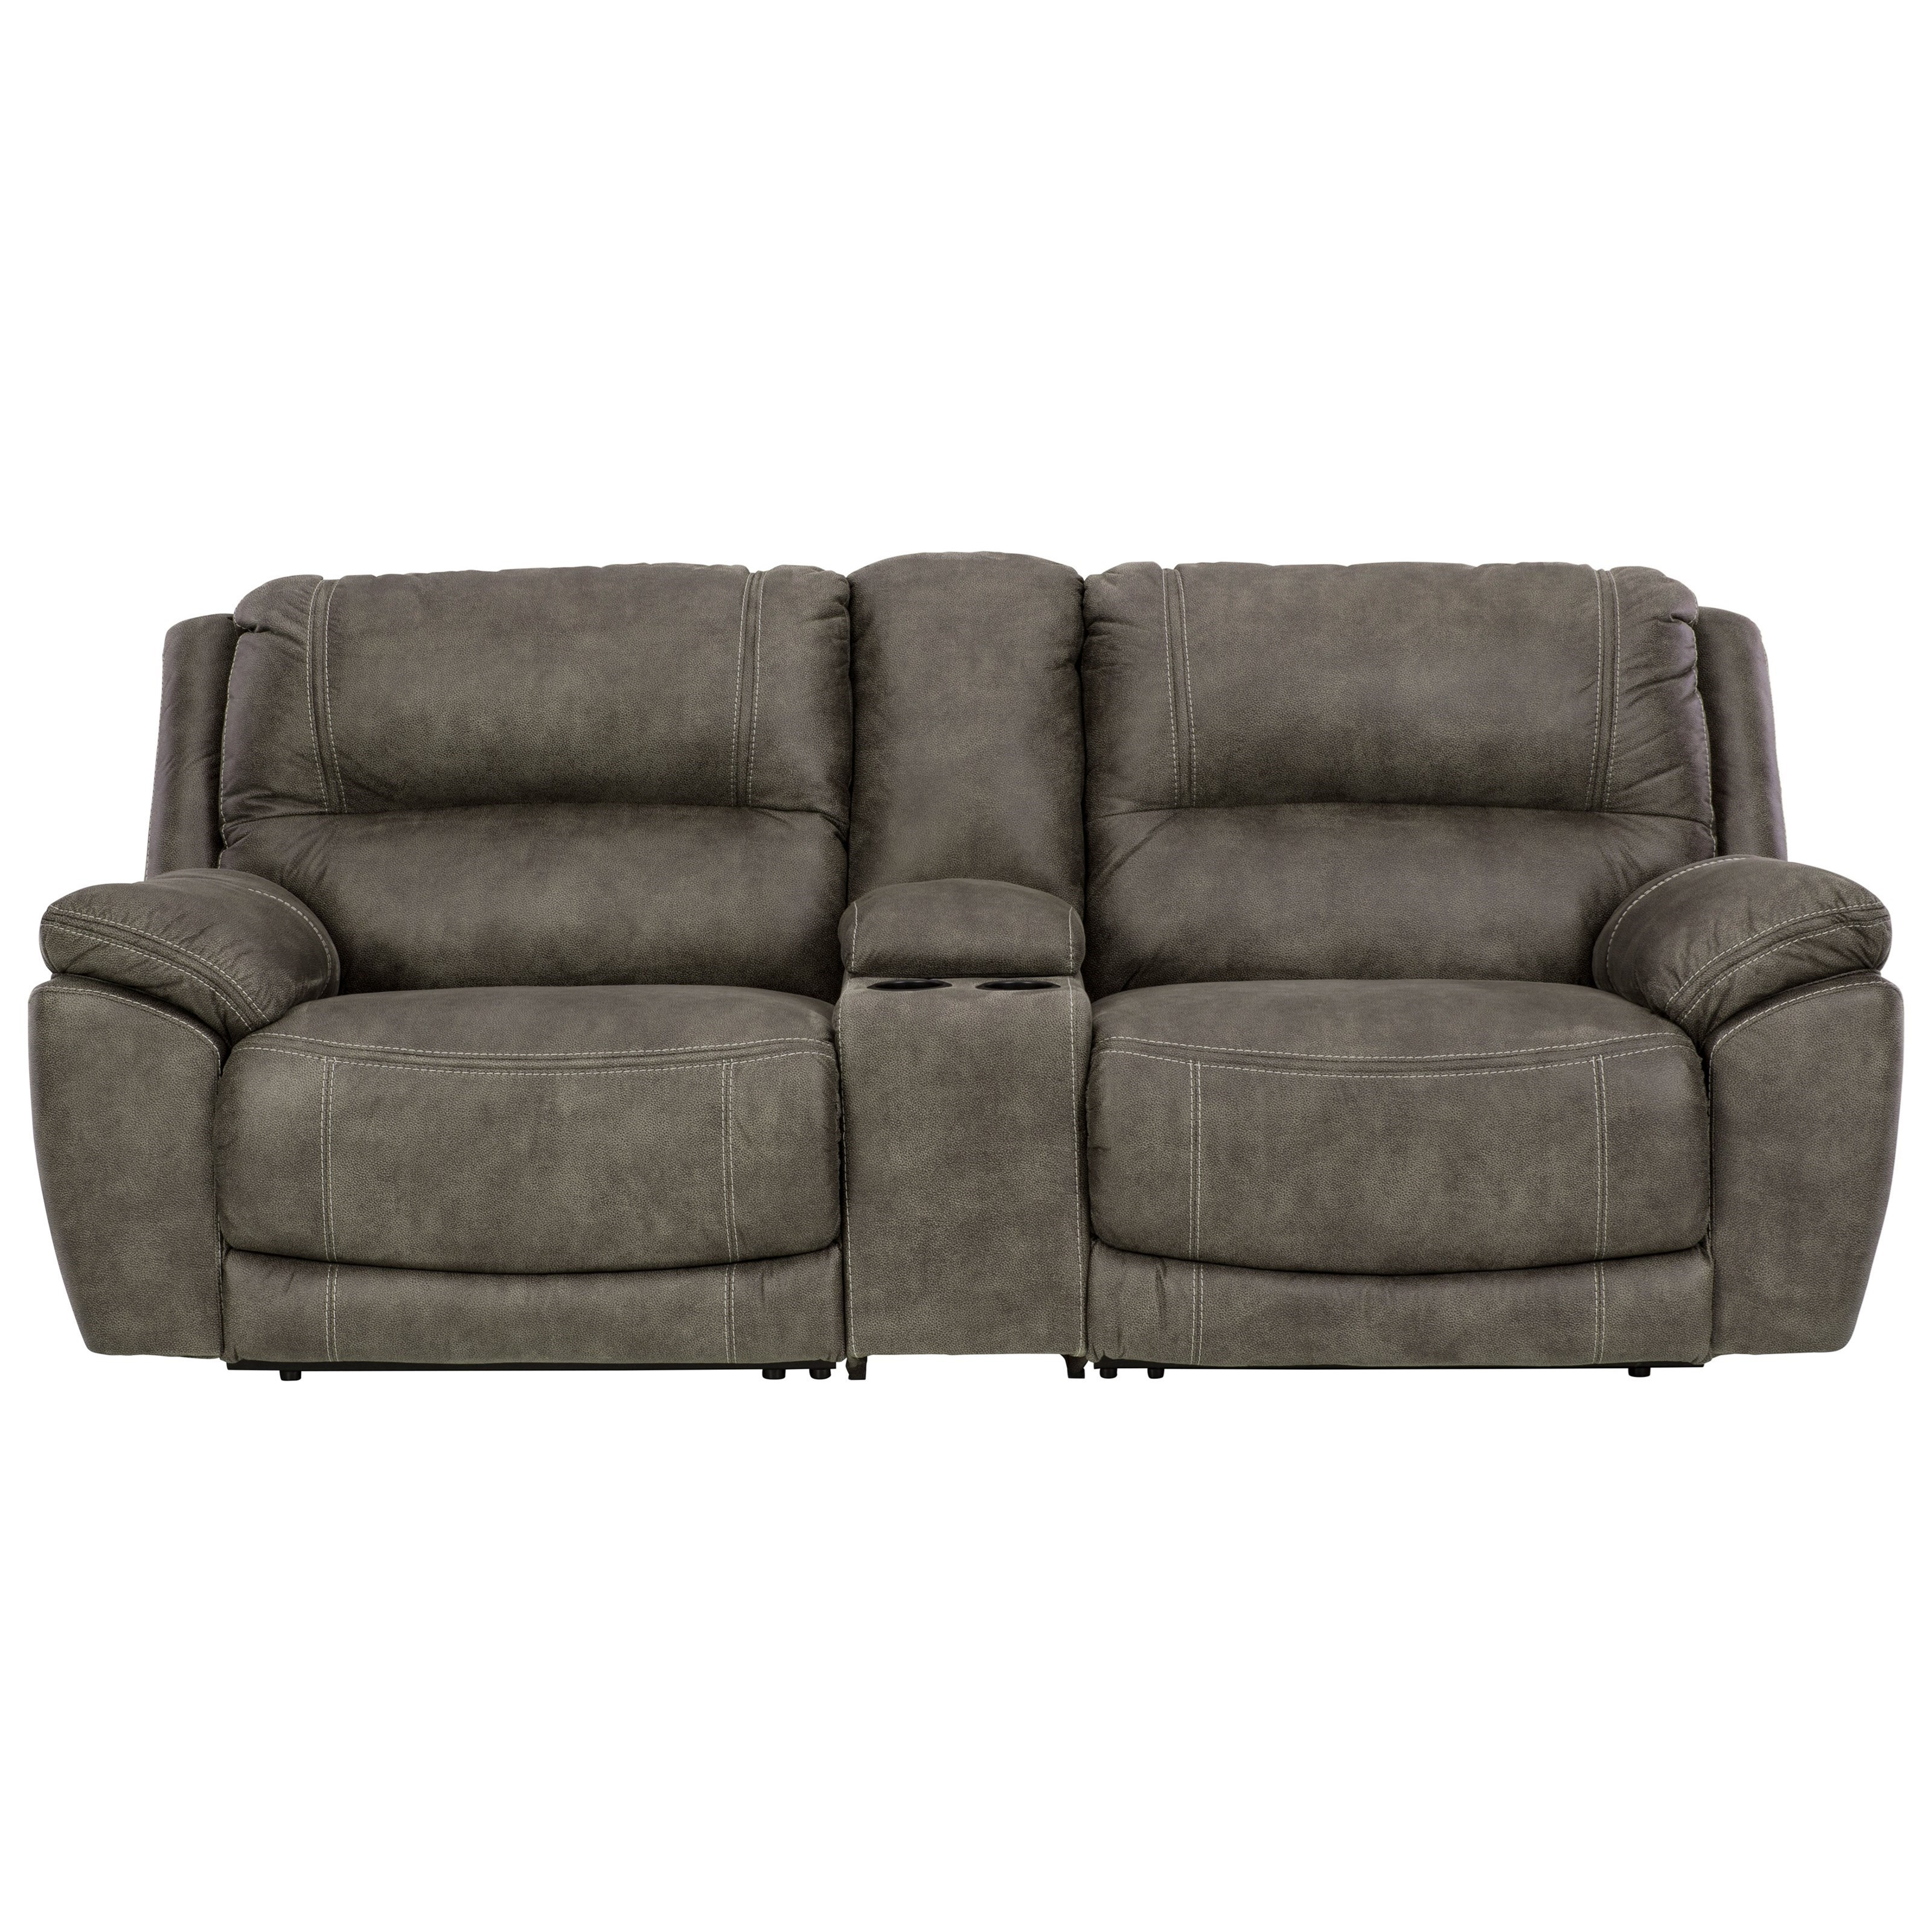 Faux Leather Power Reclining Loveseat w/ Console and Power Headrests